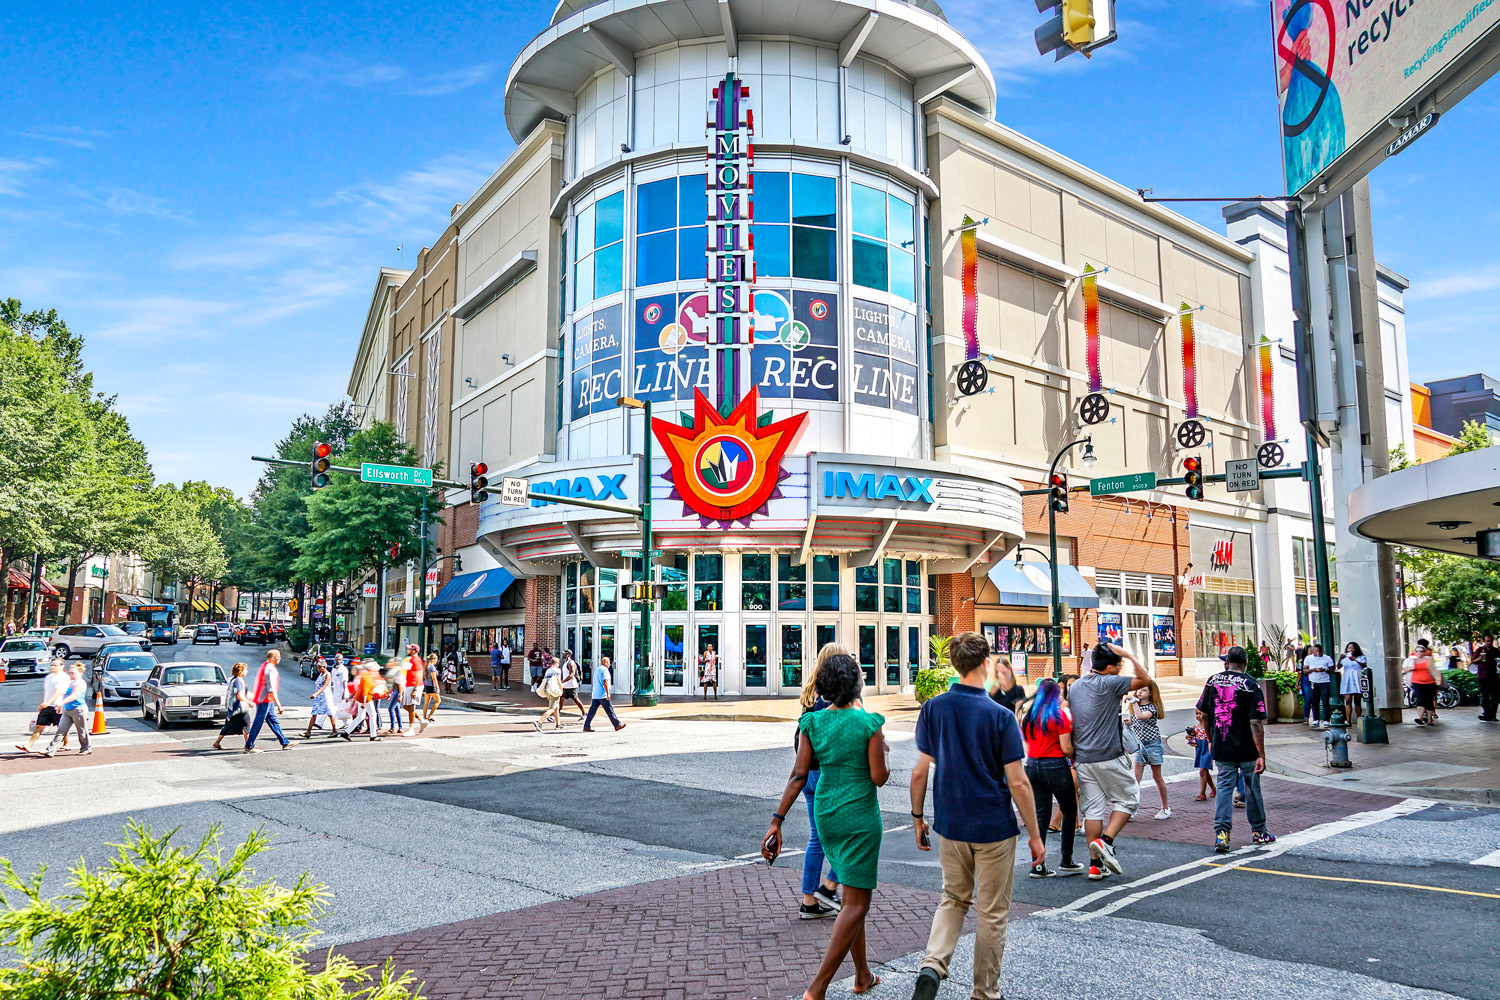 12 min to Regal Majestic & IMAX theater in Downtown Silver Spring, MD